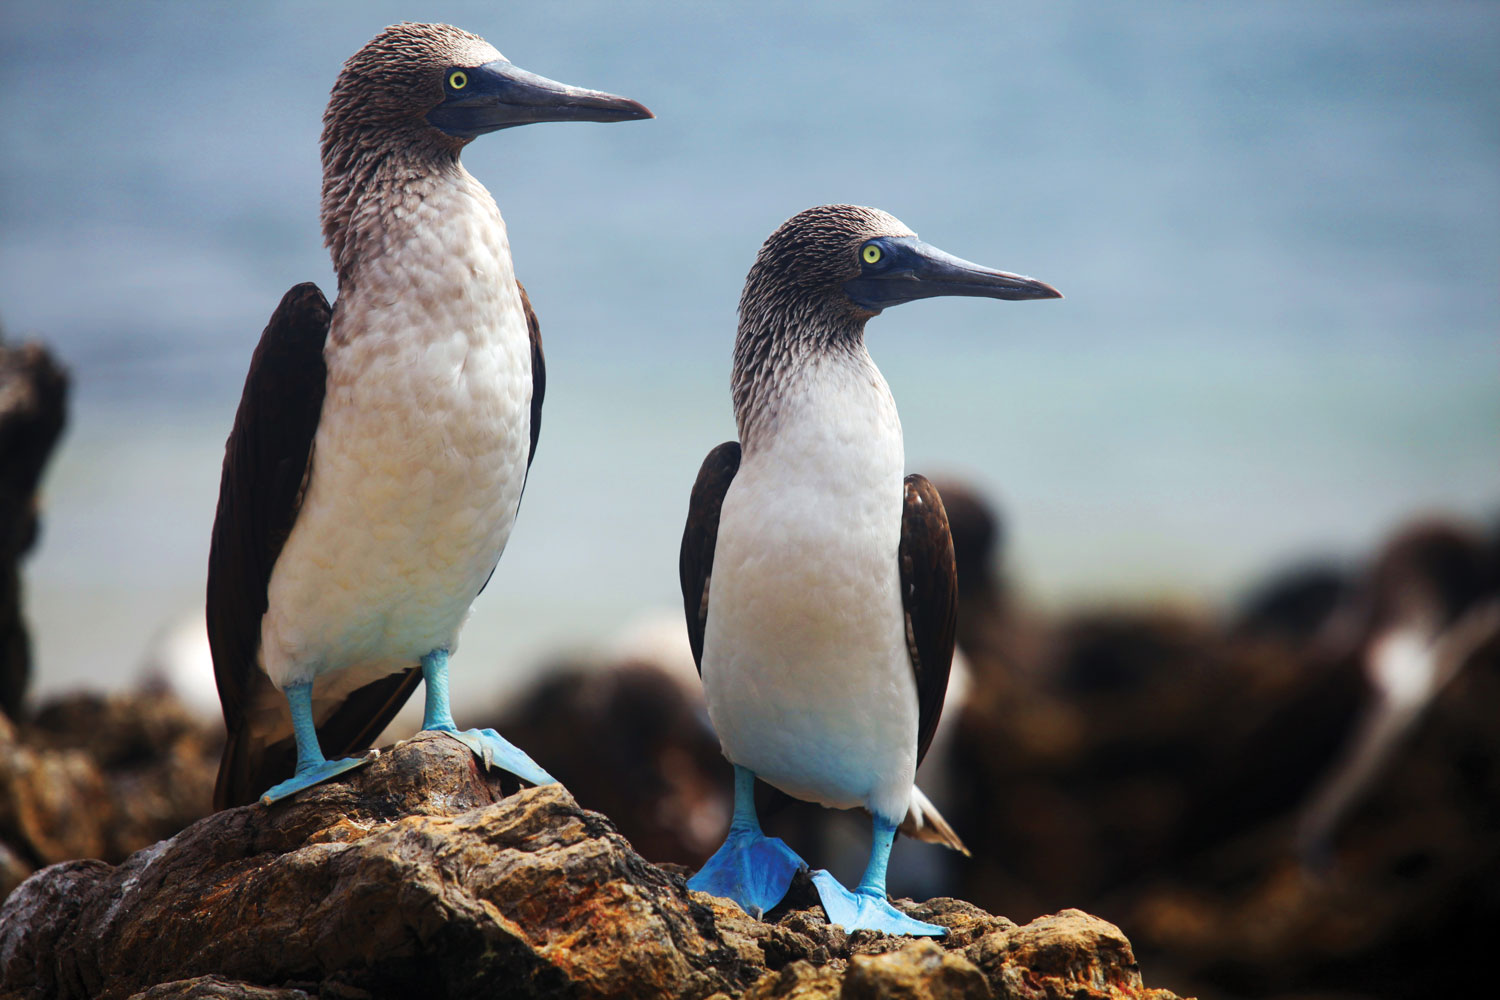 blue footed booby honeymoon ideas luxury cruise in the galapagos islands travel tips reviews and suggestions